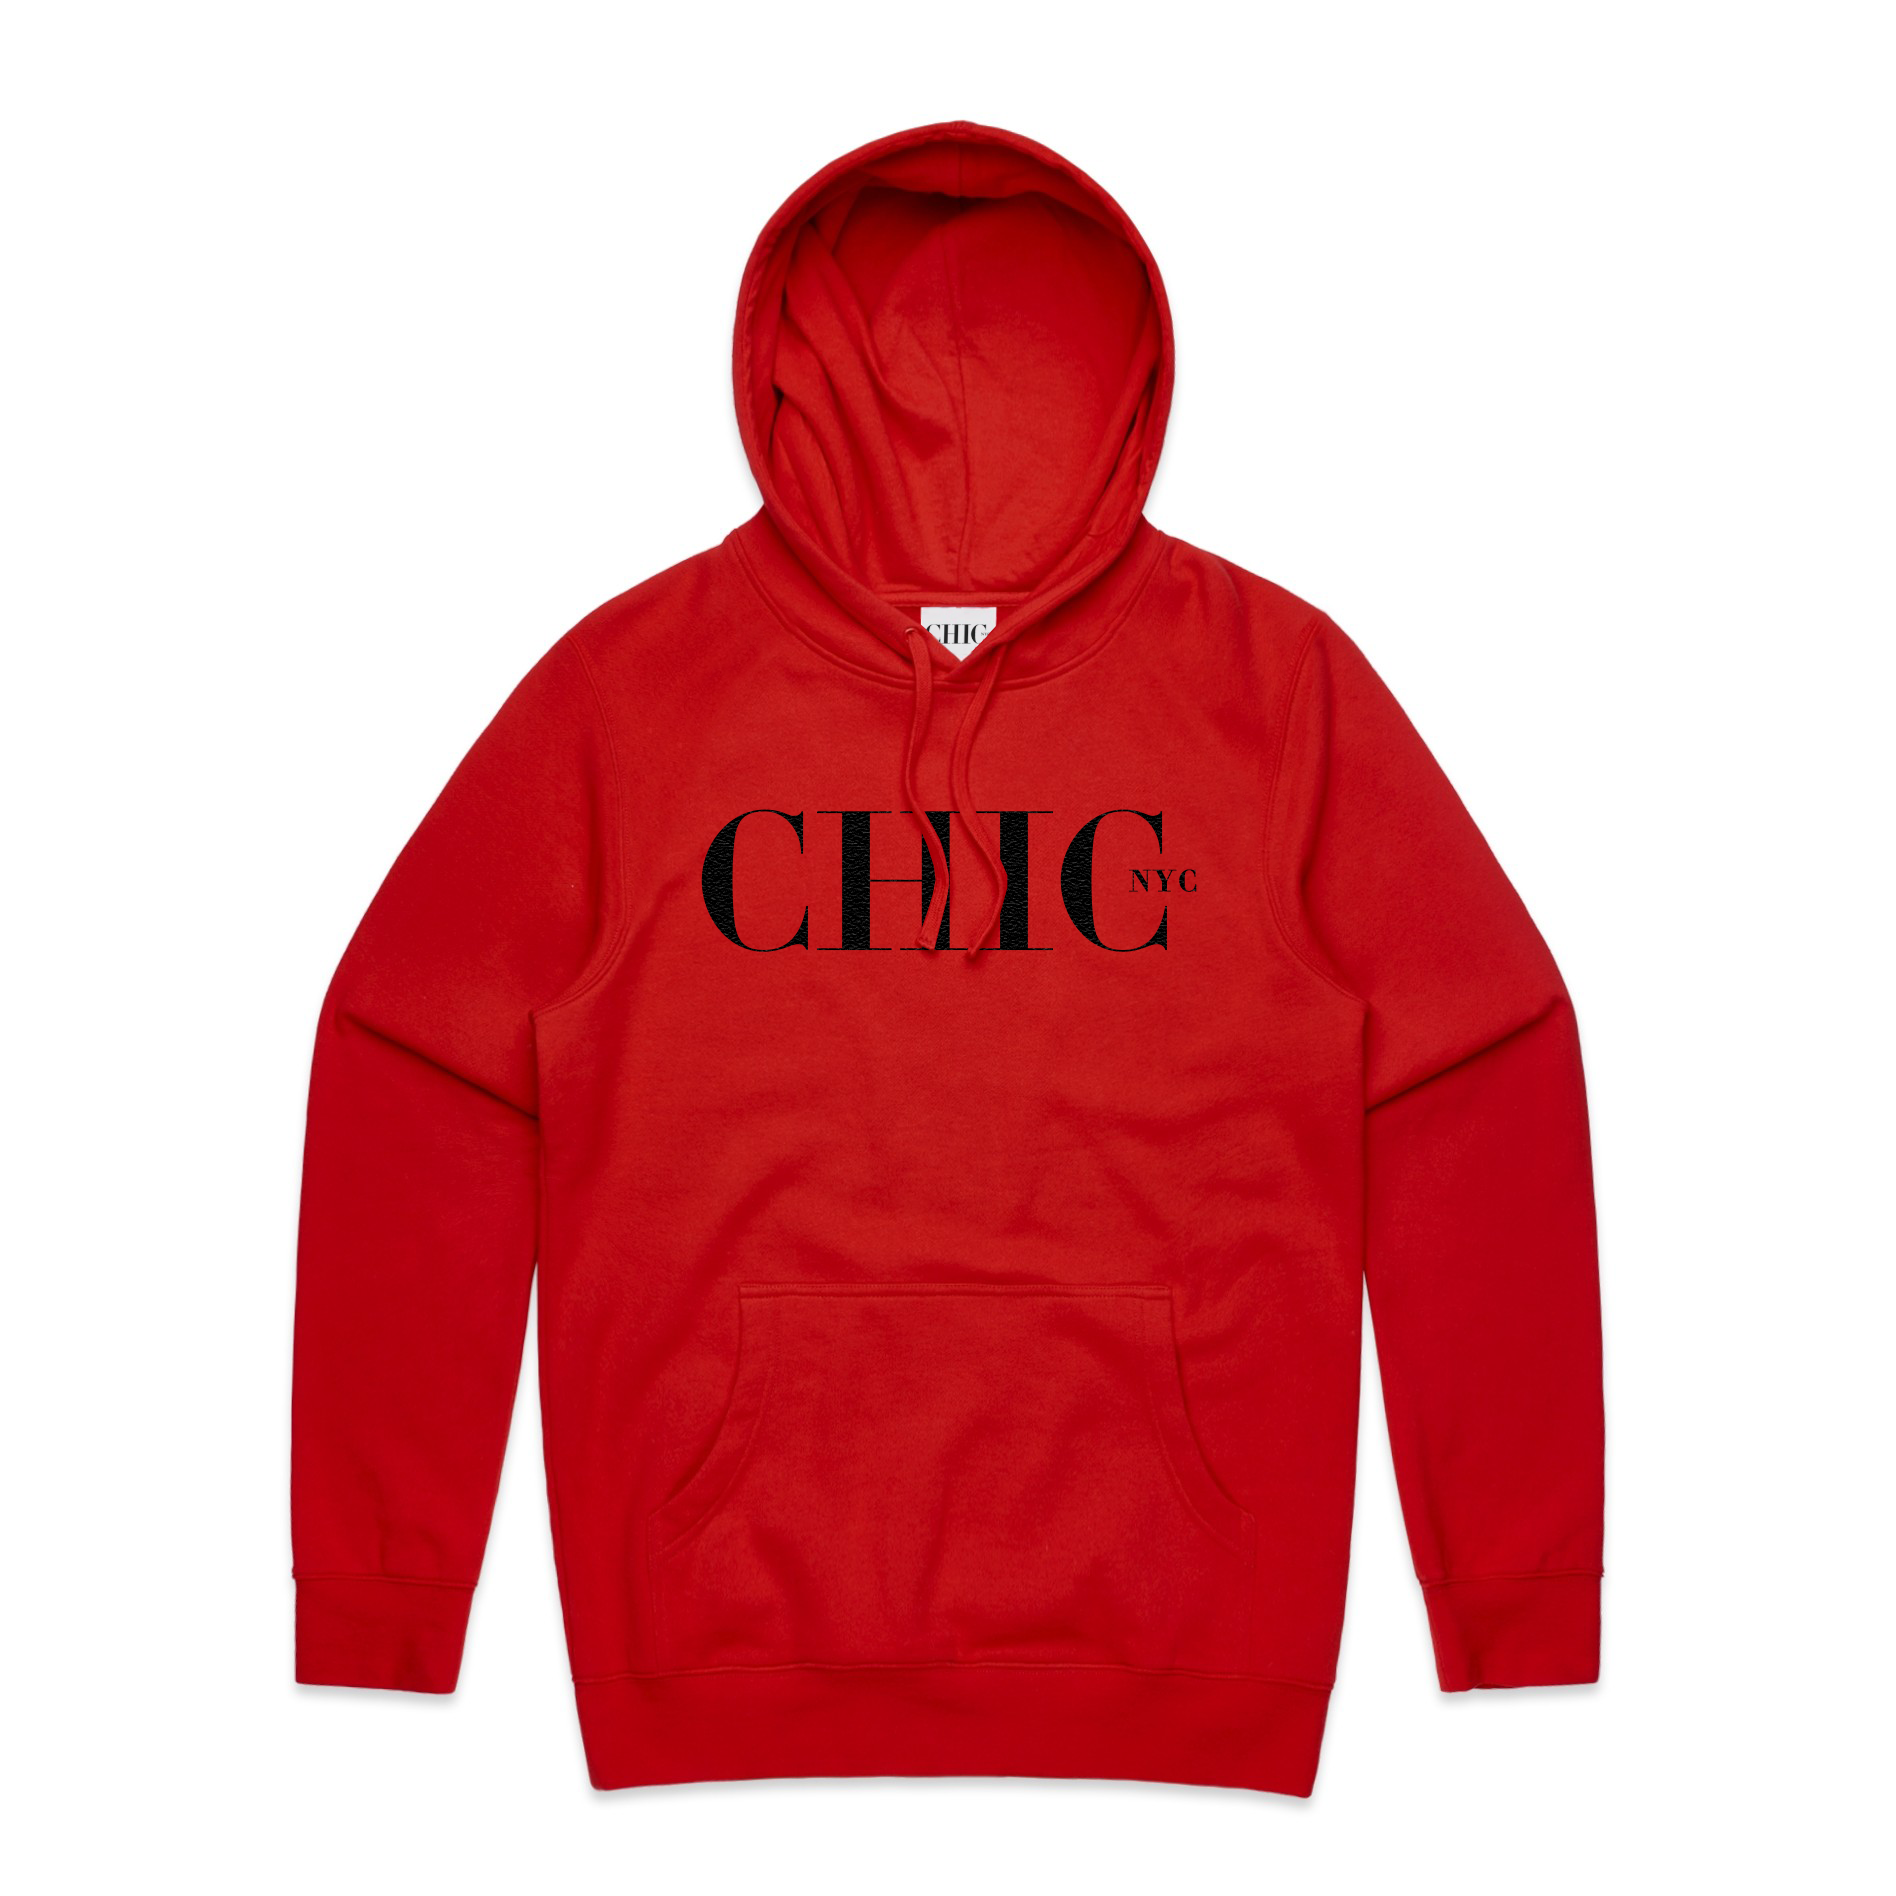 CHIC NYC MAN Hoodie - Red